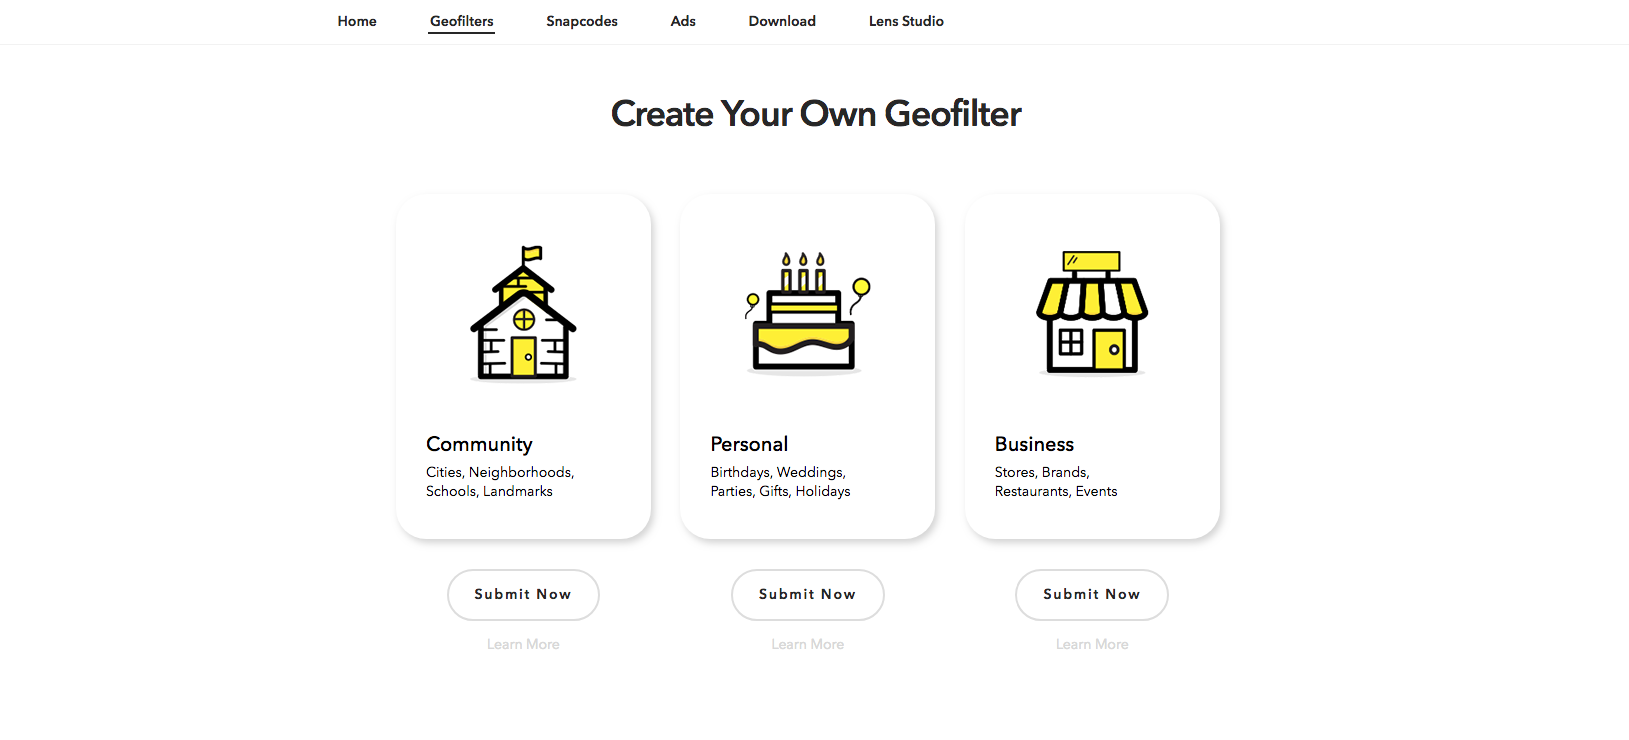 create-business-geofilter-snapchat